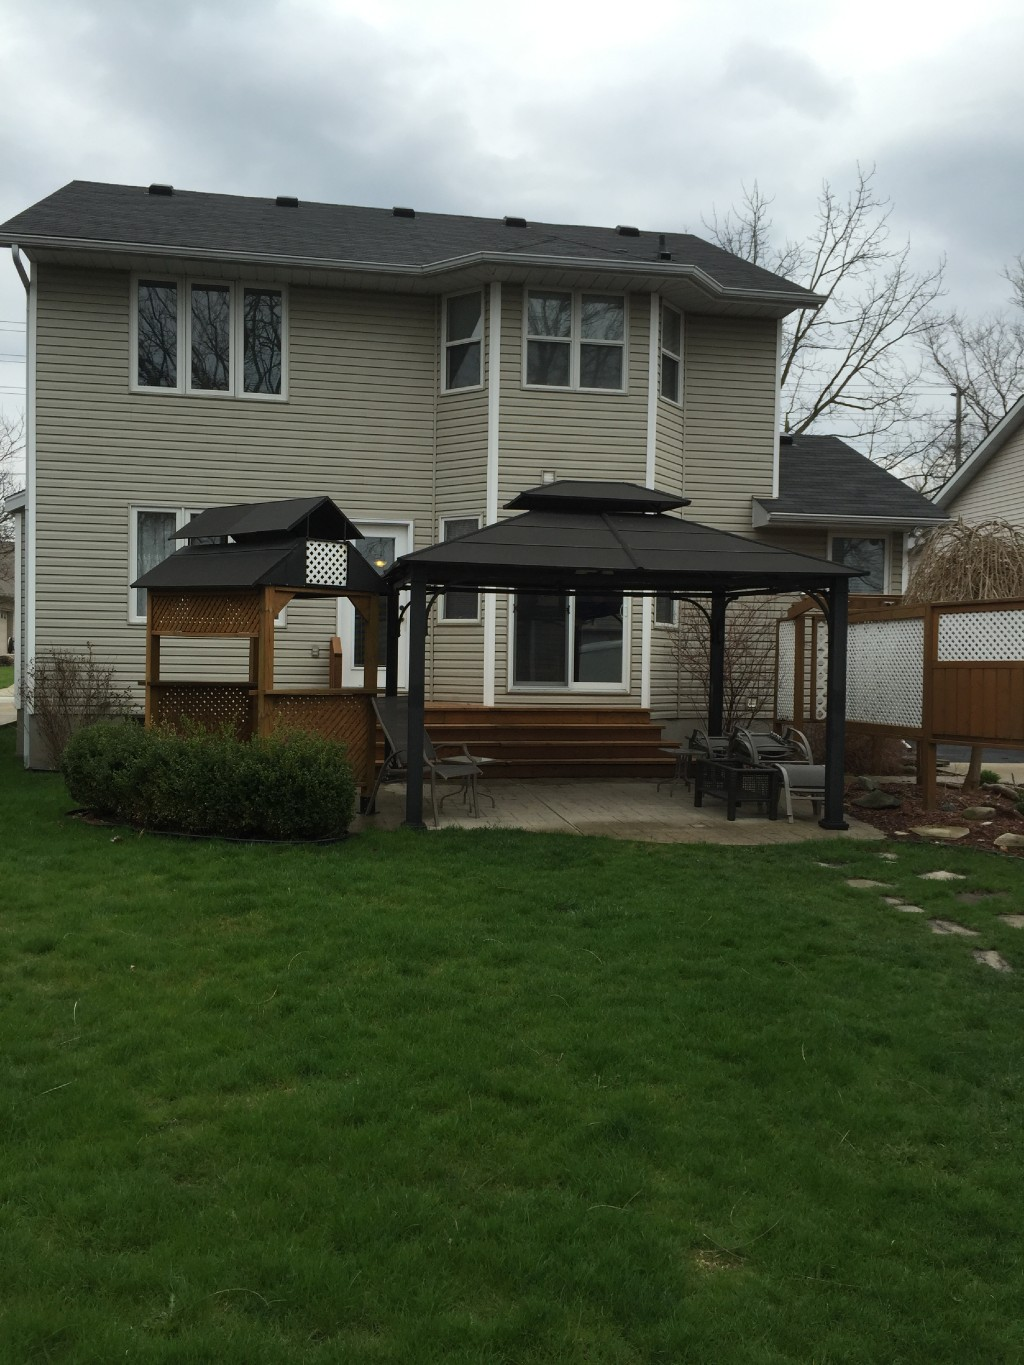 1209 EMILY ST, St. Clair, Ontario (ID 201672338)